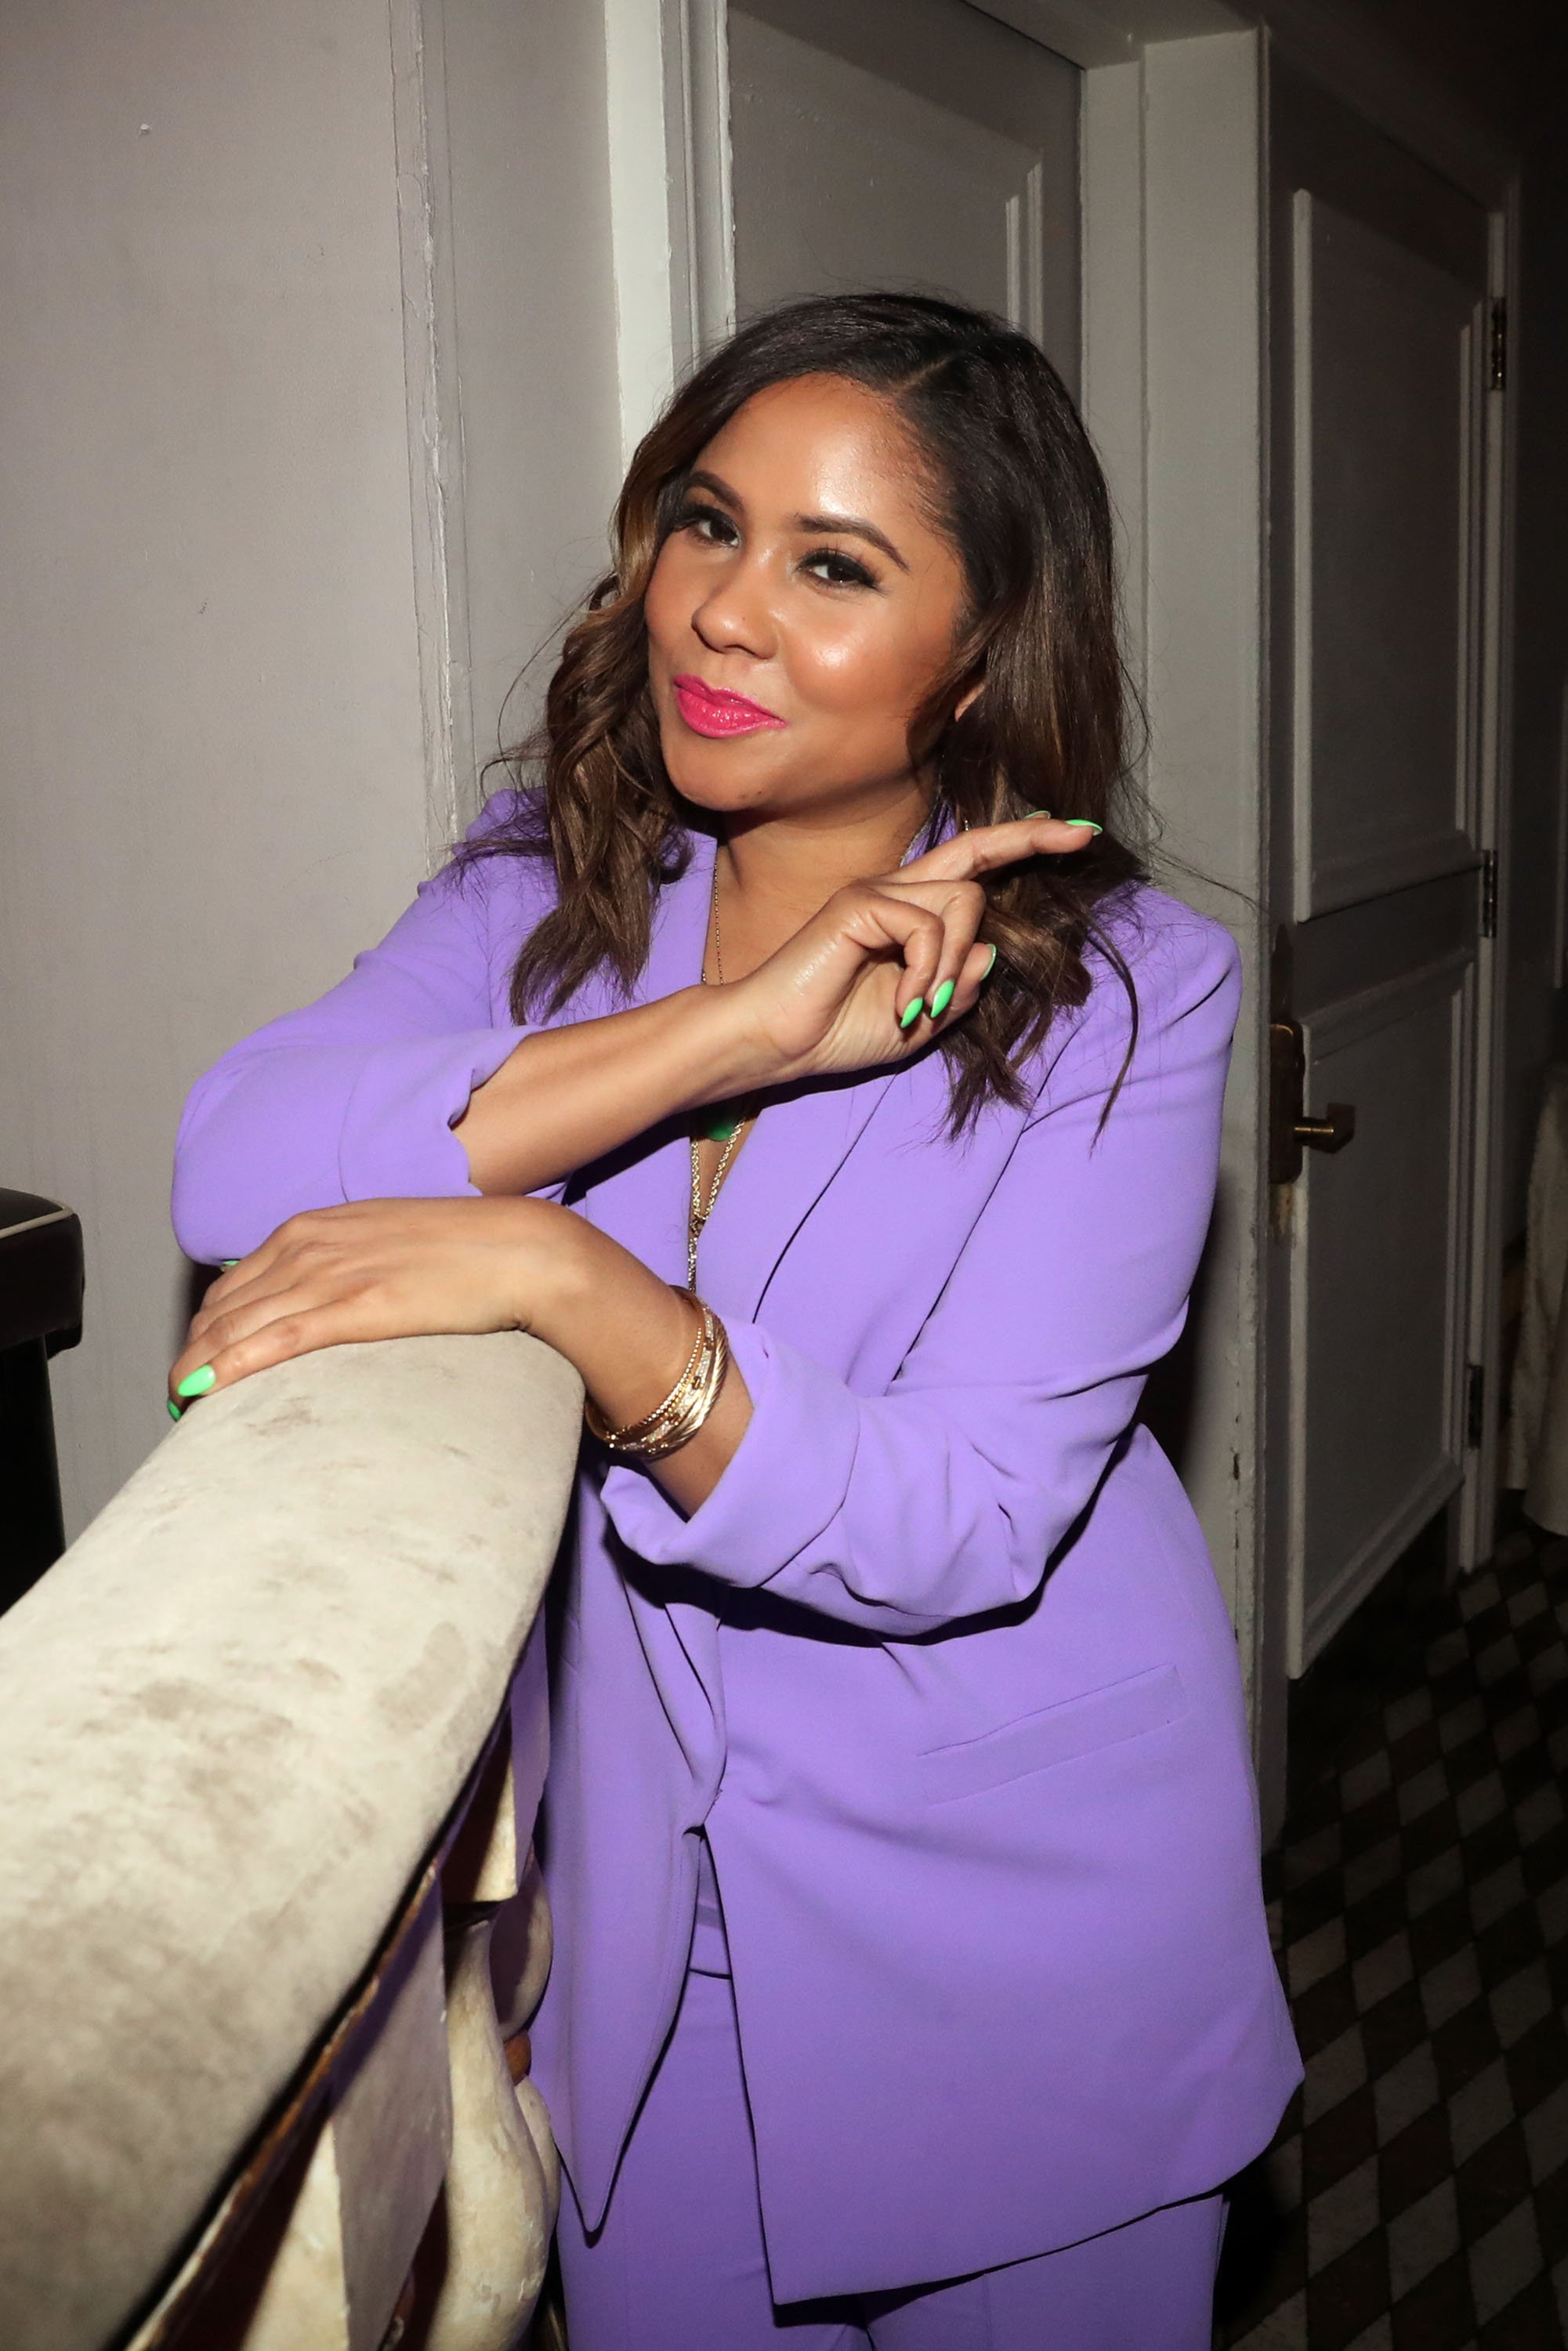 Angela Yee at the AFUWI 22nd Annual Legacy Awards Gala on Feb. 27, 2019 in New York City | Photo: Getty Images